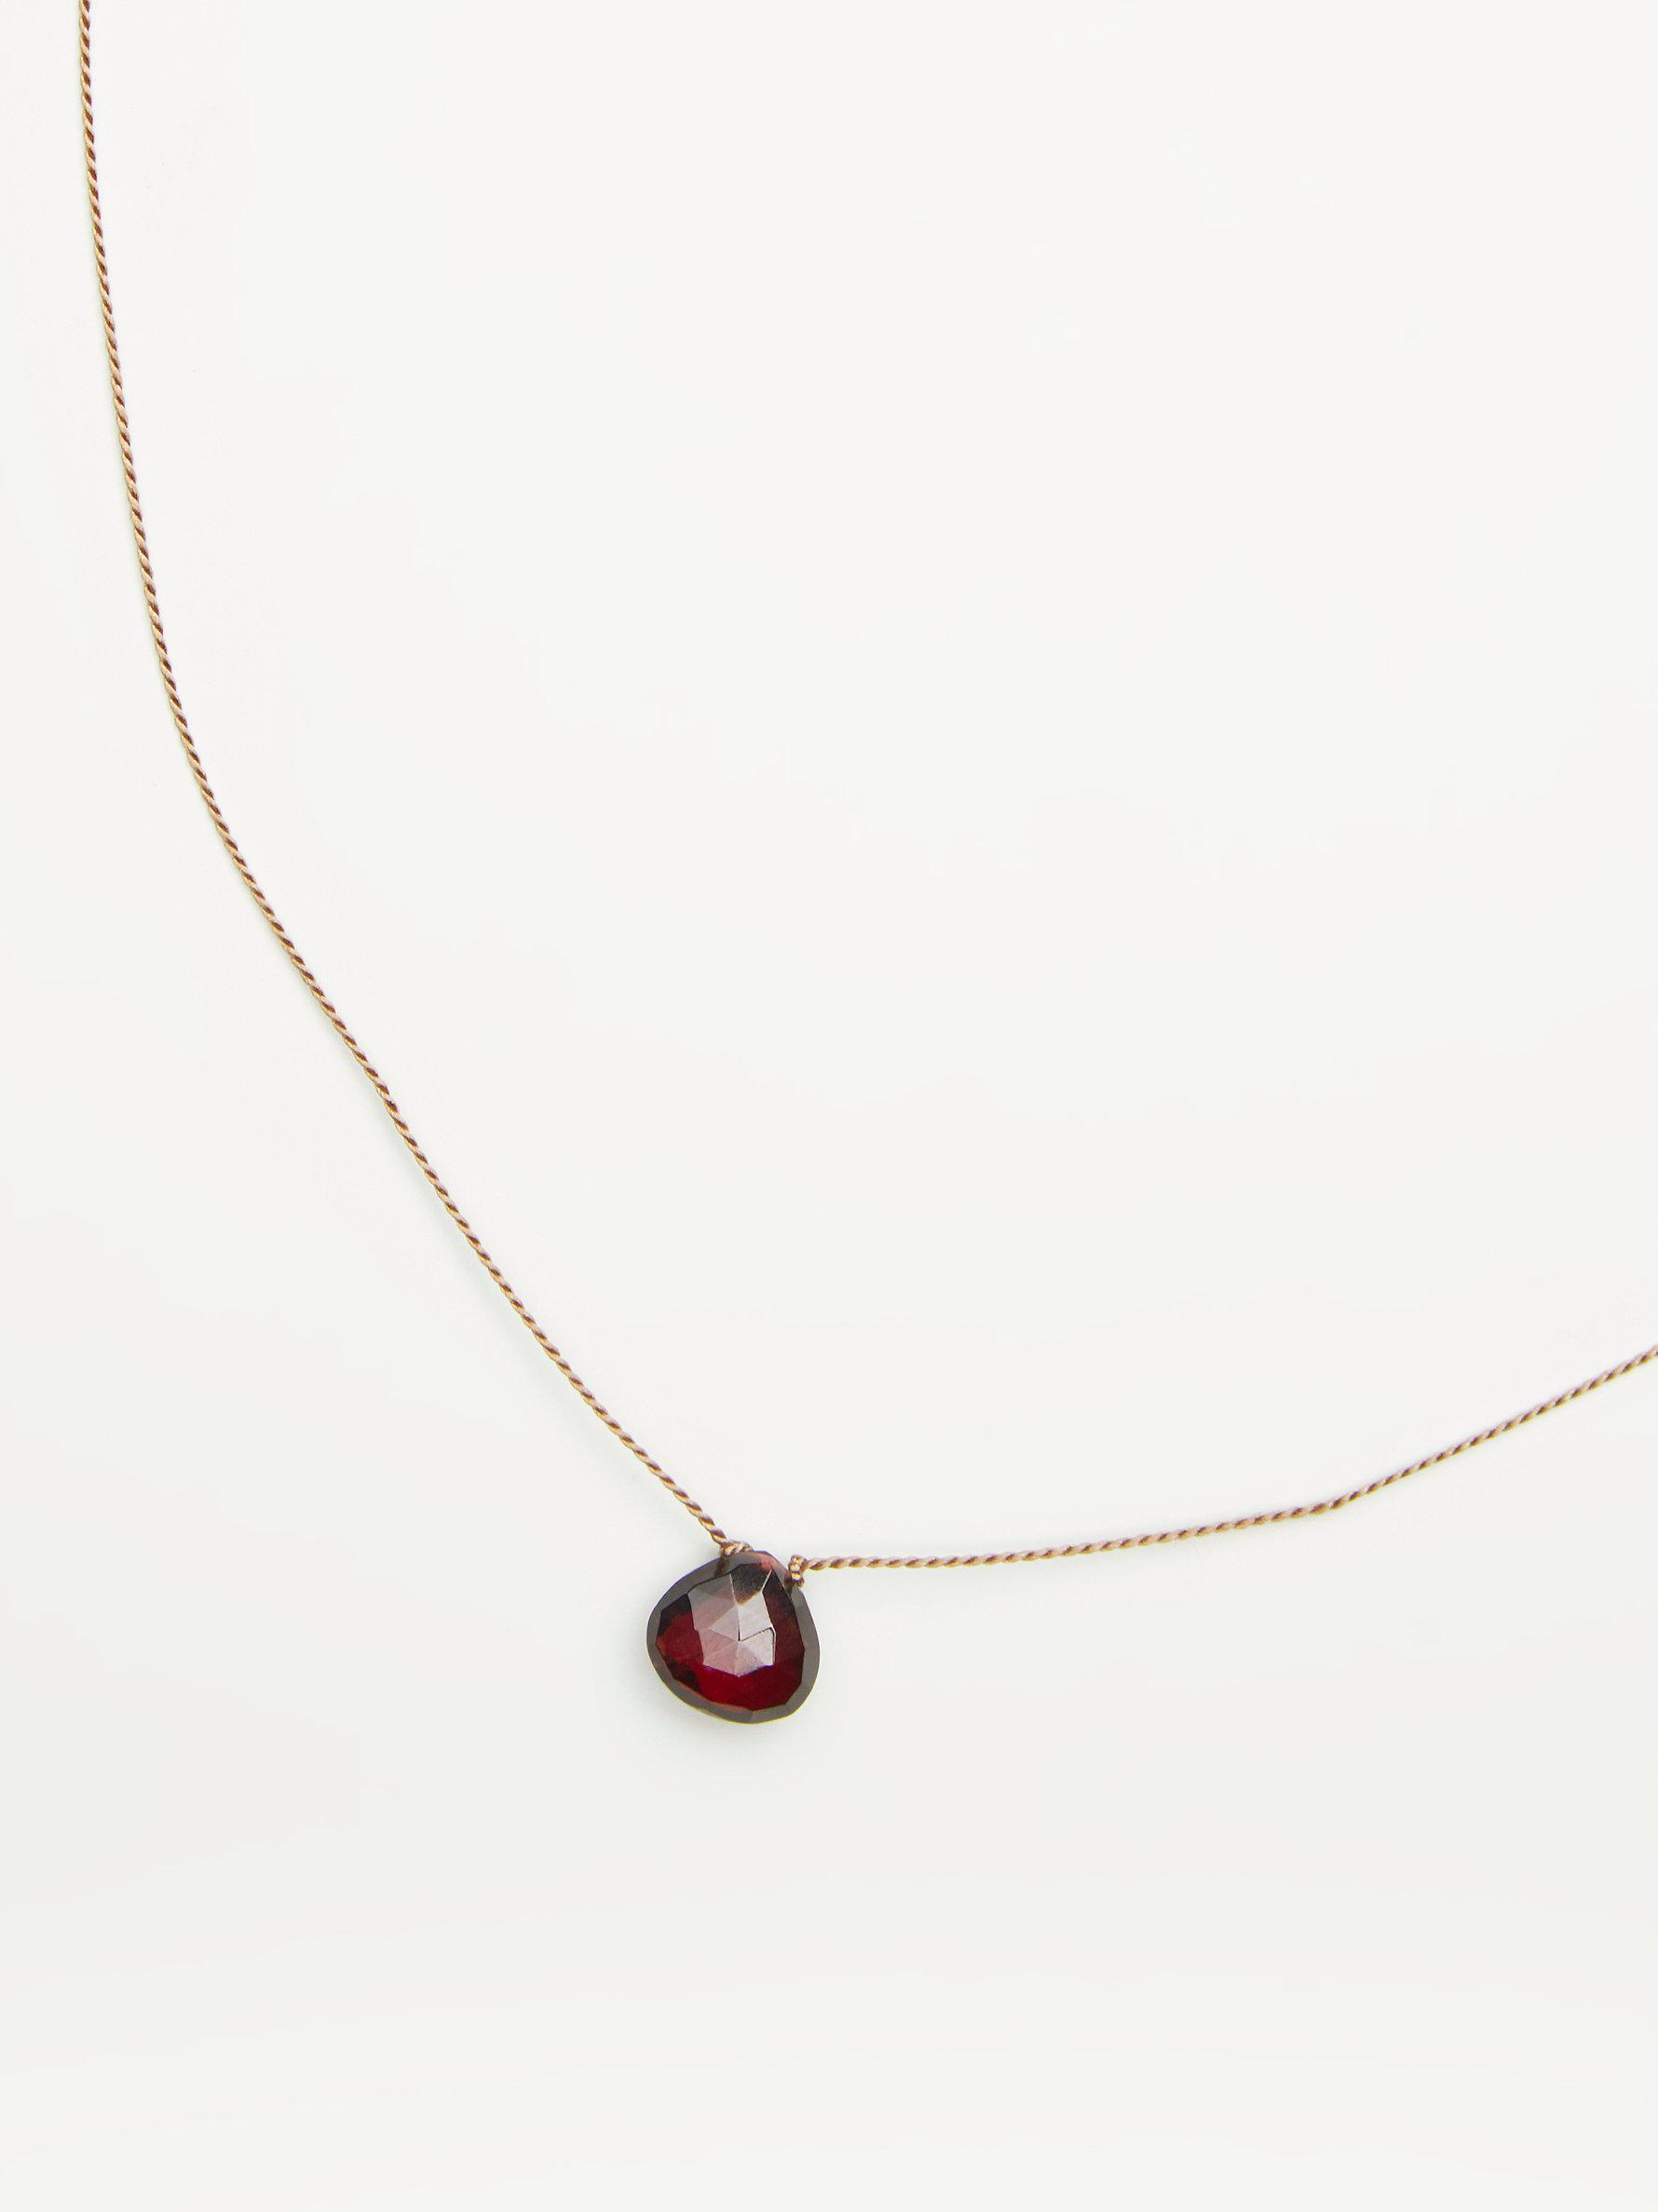 gallery lyst stone truth jewelry garnet people free necklace meaningful